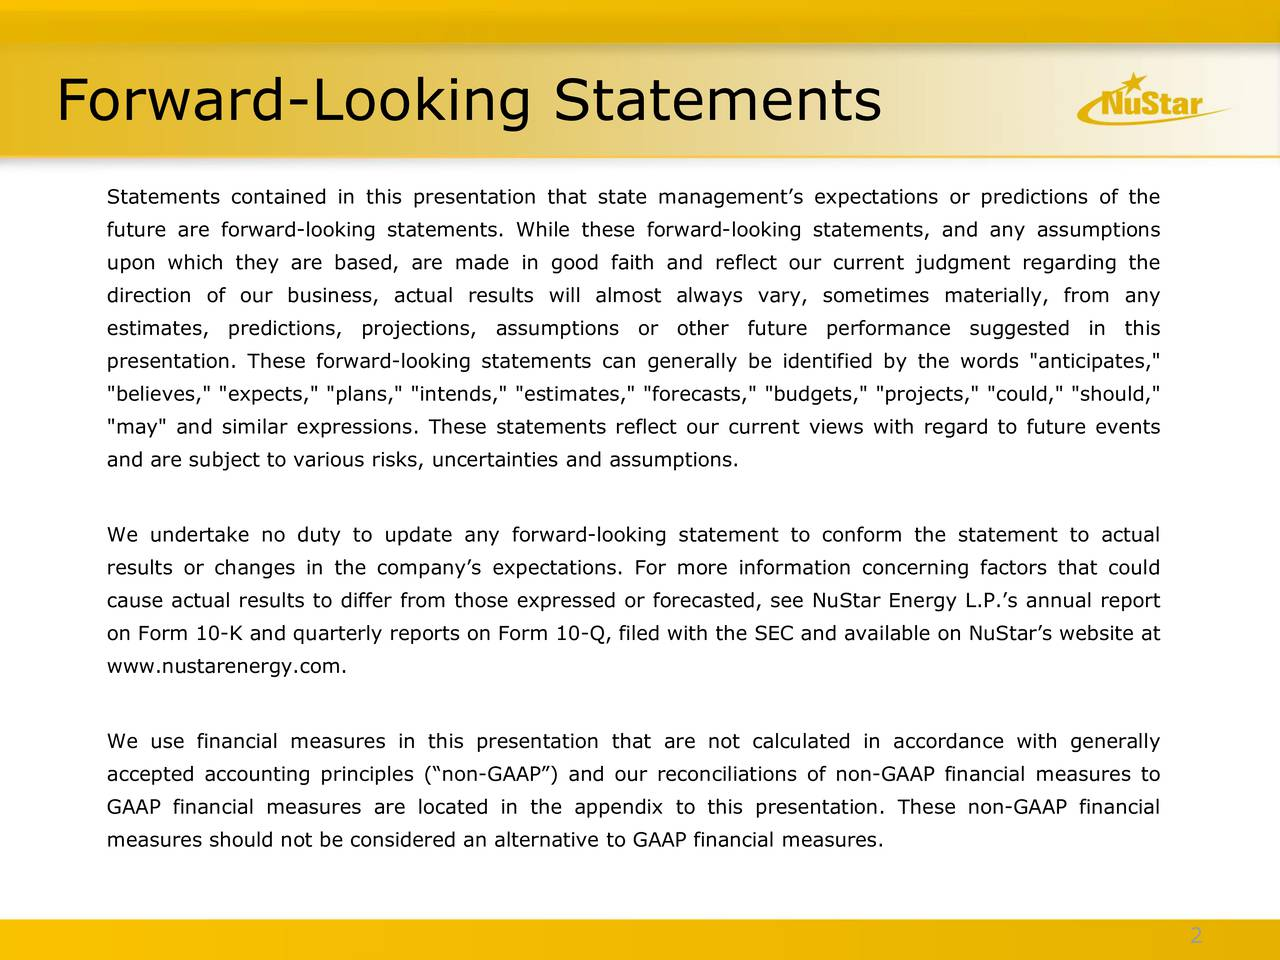 """Statements contained in this presentation that state managements expectations or predictions of the future are forward-looking statements. While these forward-looking statements, and any assumptions upon which they are based, are made in good faith and reflect our current judgment regarding the direction of our business, actual results will almost always vary, sometimes materially, from any estimates, predictions, projections, assumptions or other future performance suggested in this presentation. These forward-looking statements can generally be identified by the words """"anticipates,"""" """"believes,"""" """"expects,"""" """"plans,"""" """"intends,"""" """"estimates,"""" """"forecasts,"""" """"budgets,"""" """"projects,"""" """"could,"""" """"should,"""" """"may"""" and similar expressions. These statements reflect our current views with regard to future events and are subject to various risks, uncertainties and assumptions. We undertake no duty to update any forward-looking statement to conform the statement to actual results or changes in the companys expectations. For more information concerning factors that could cause actual results to differ from those expressed or forecasted, see NuStar Energy L.P.s annual report on Form 10-K and quarterly reports on Form 10-Q, filed with the SEC and available on NuStars website at www.nustarenergy.com. We use financial measures in this presentation that are not calculated in accordance with generally accepted accounting principles (non-GAAP) and our reconciliations of non-GAAP financial measures to GAAP financial measures are located in the appendix to this presentation. These non-GAAP financial measures should not be considered an alternative to GAAP financial measures. 2"""